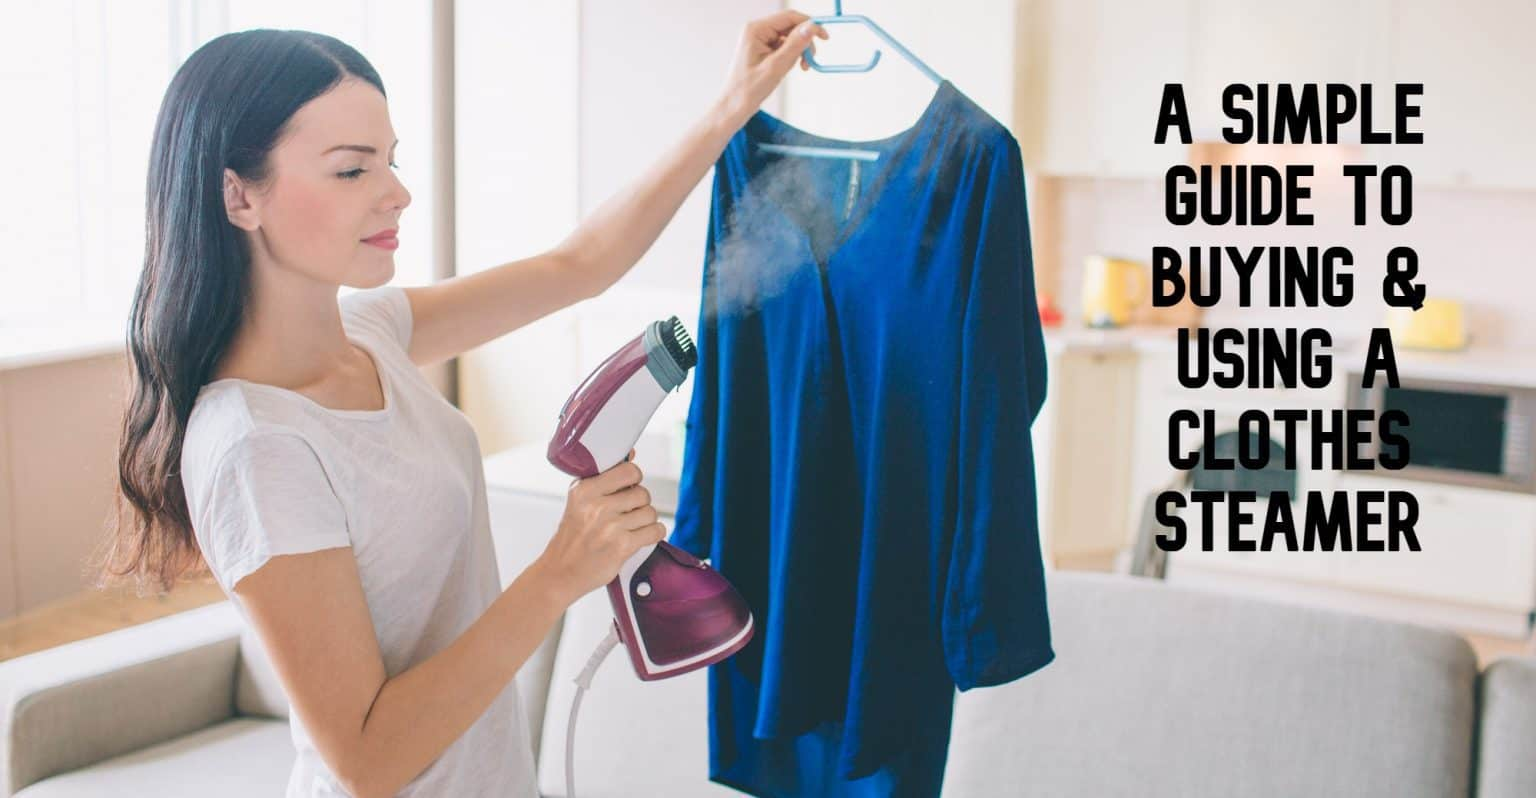 clothes steamer reviews